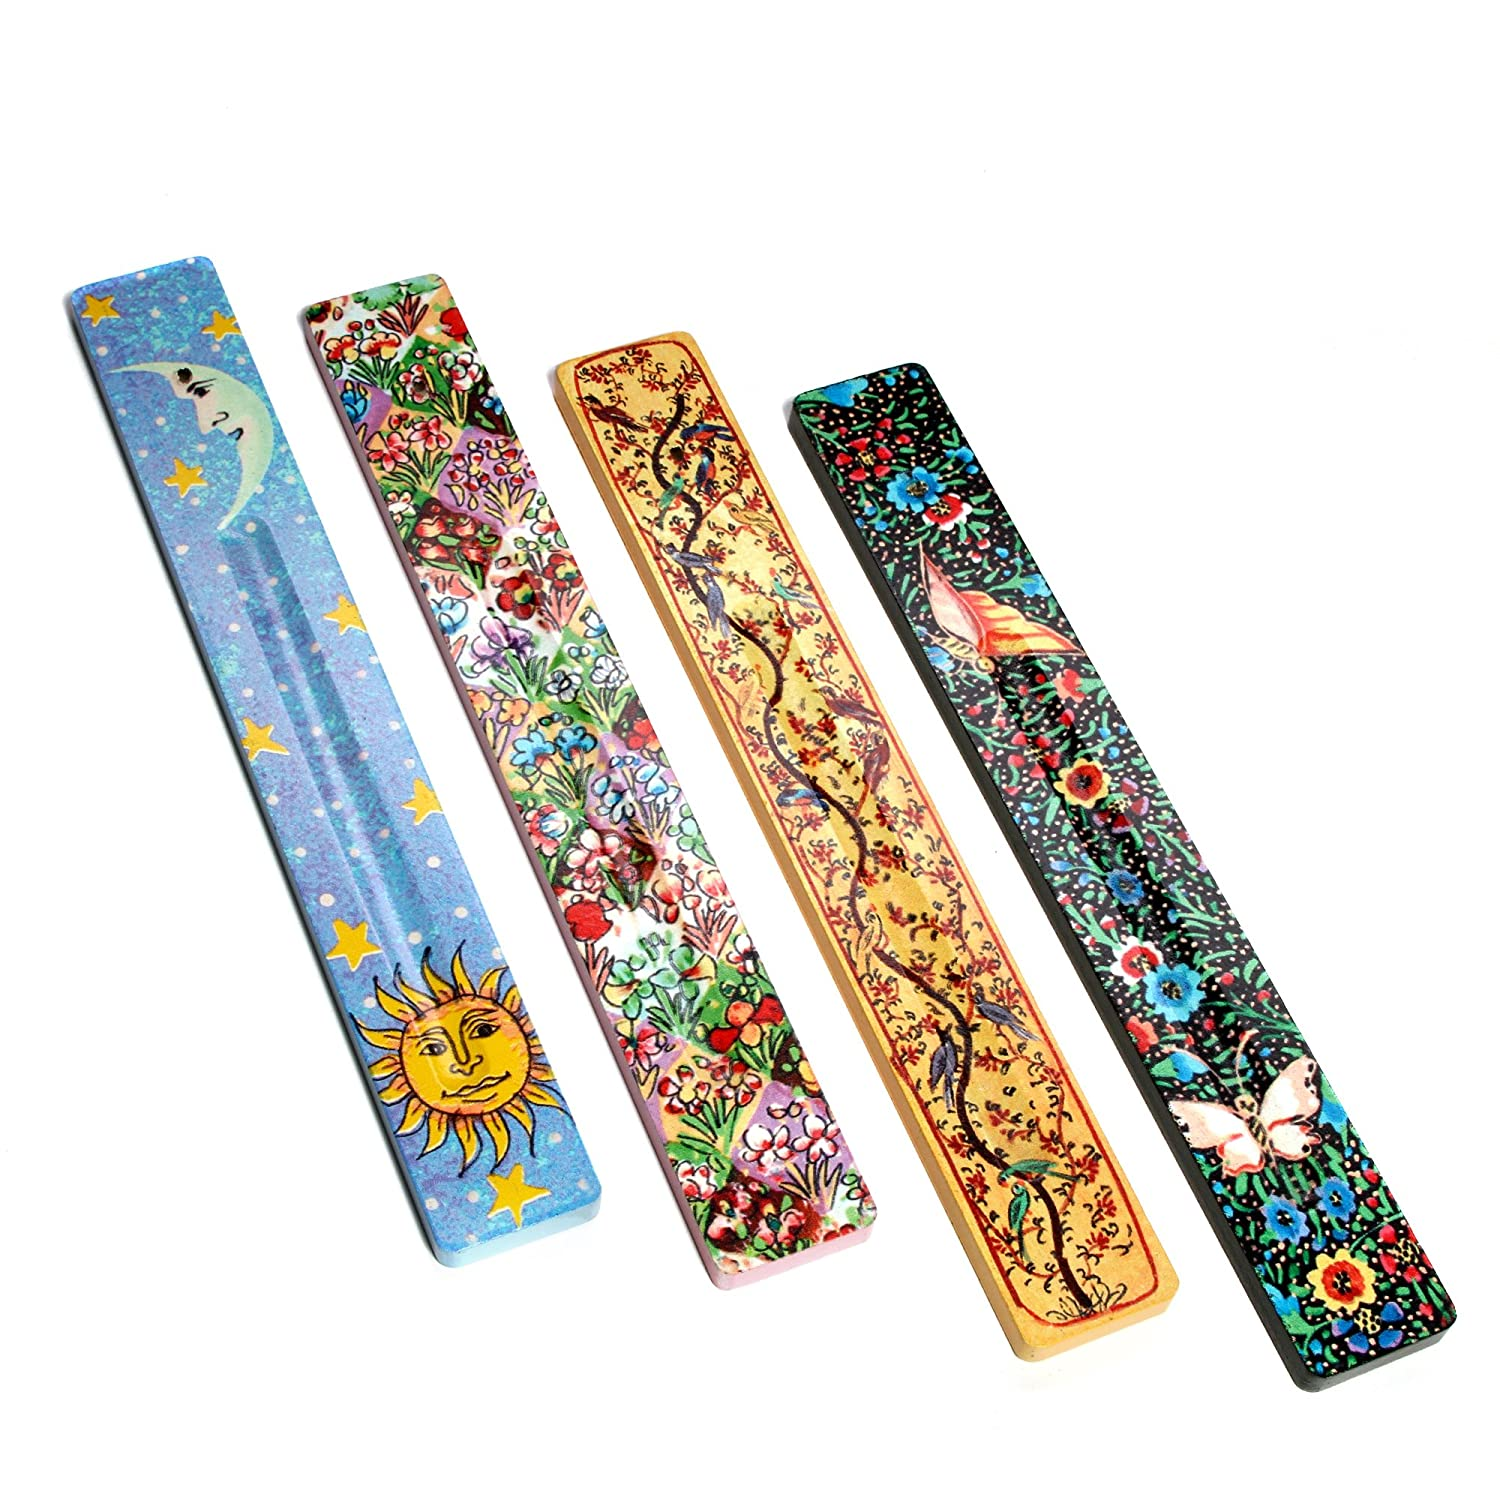 Hosley's Set of 4 Assorted 10 Long Wood Incense Holder. Ideal Gift for Wedding, Party Favor, Aromatherapy, Zen, Spa, Reiki Chakra Meditation O7 HG Global FBA-BS51403PS-4-EA